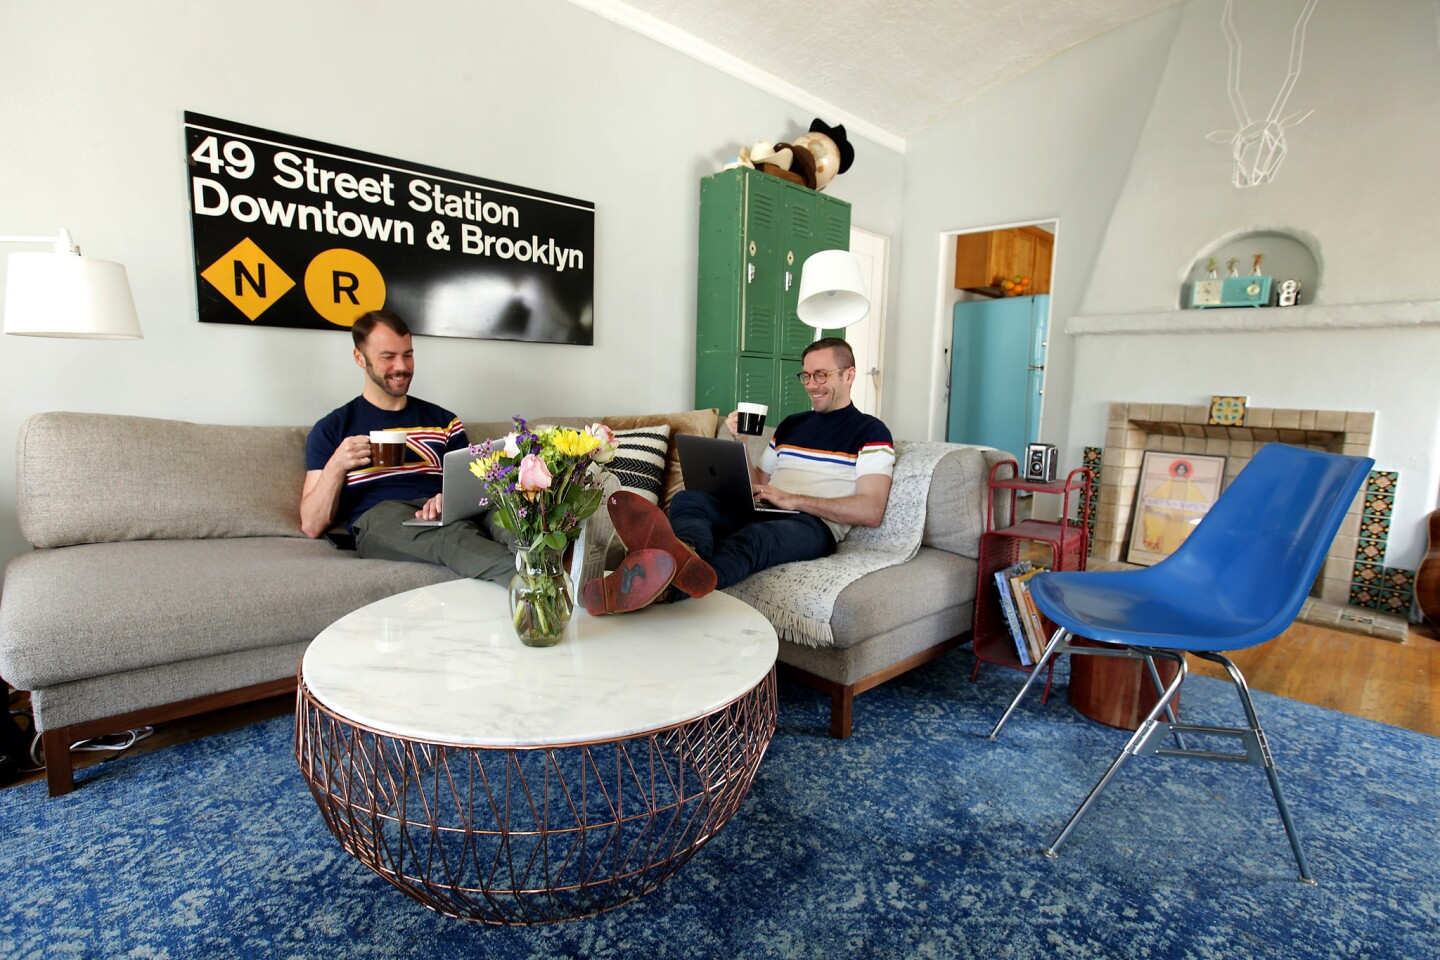 Actors Kit Williamson and John Halbach relax in the living room of their Silver Lake apartment.